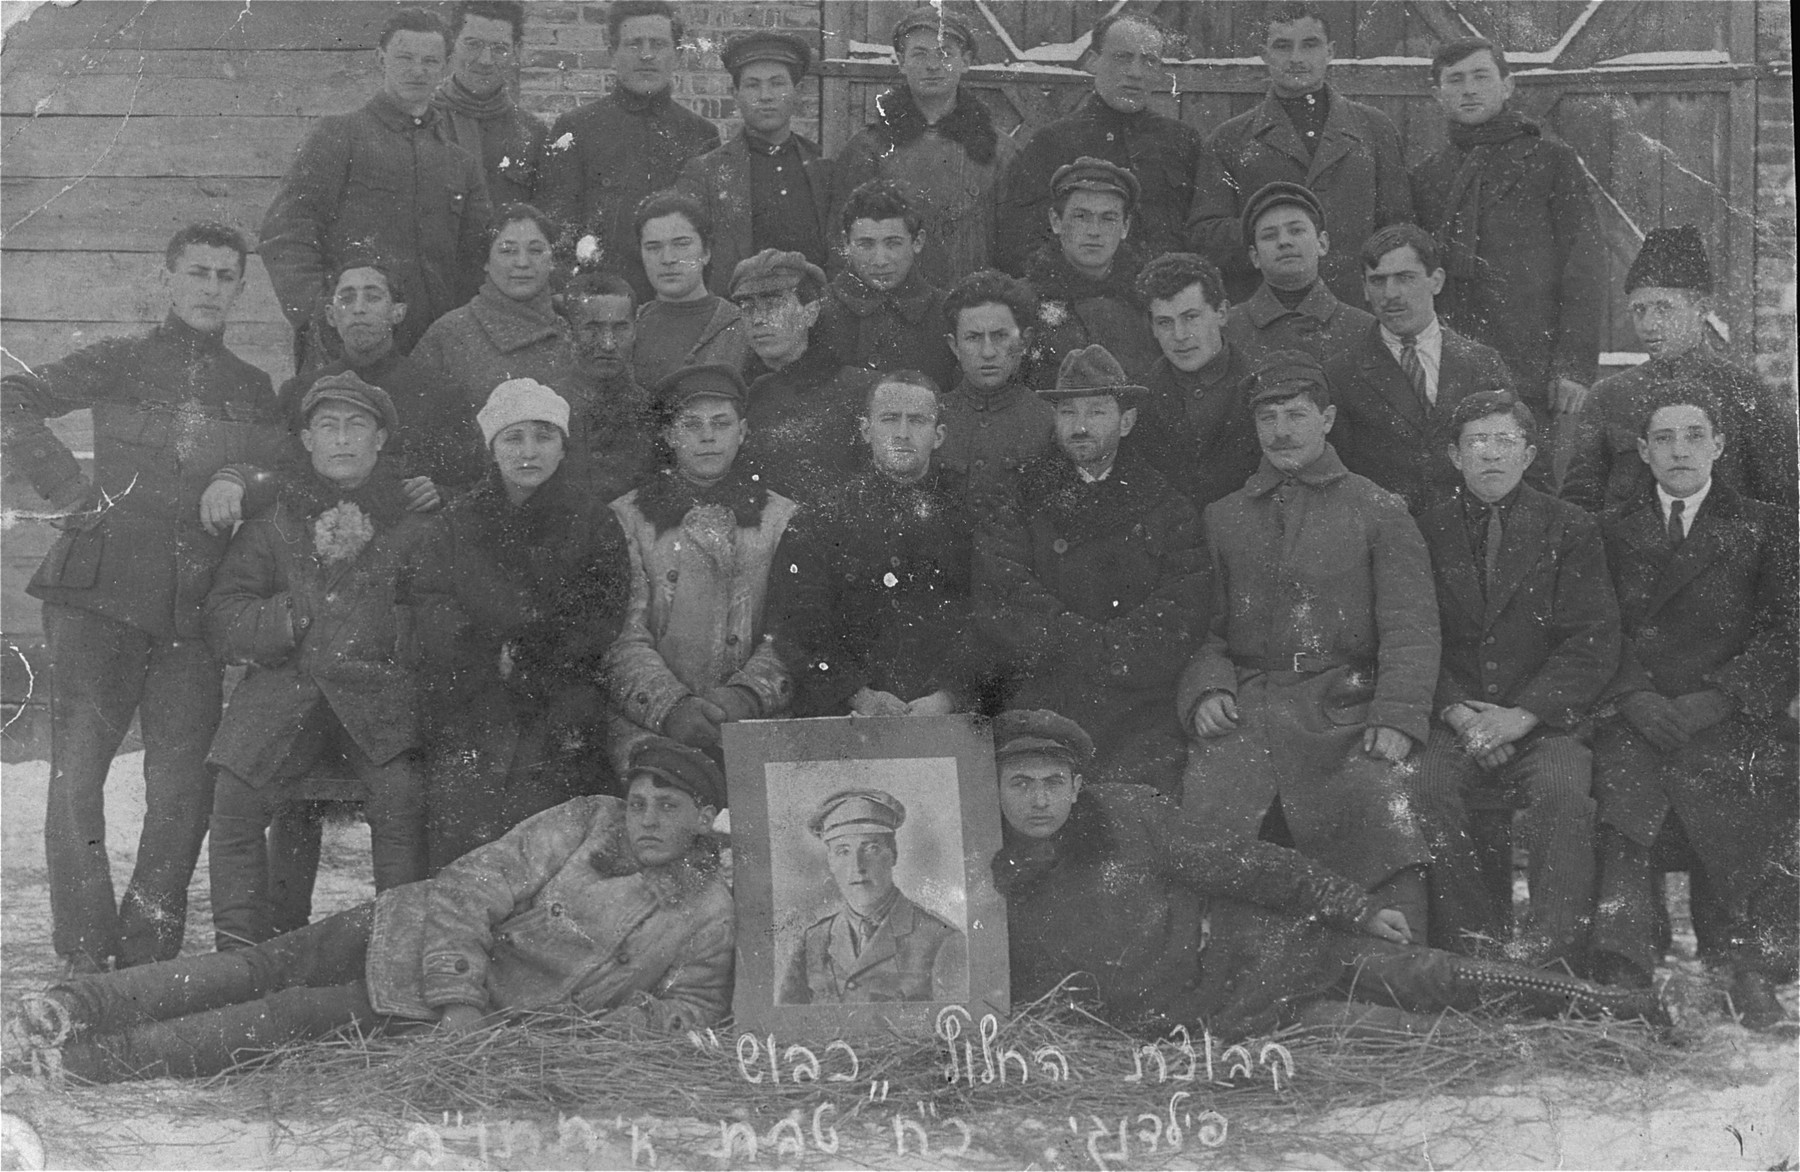 Group portrait of members of the Zionist hechalutz group, Kibbush in Kron, Lithuania.